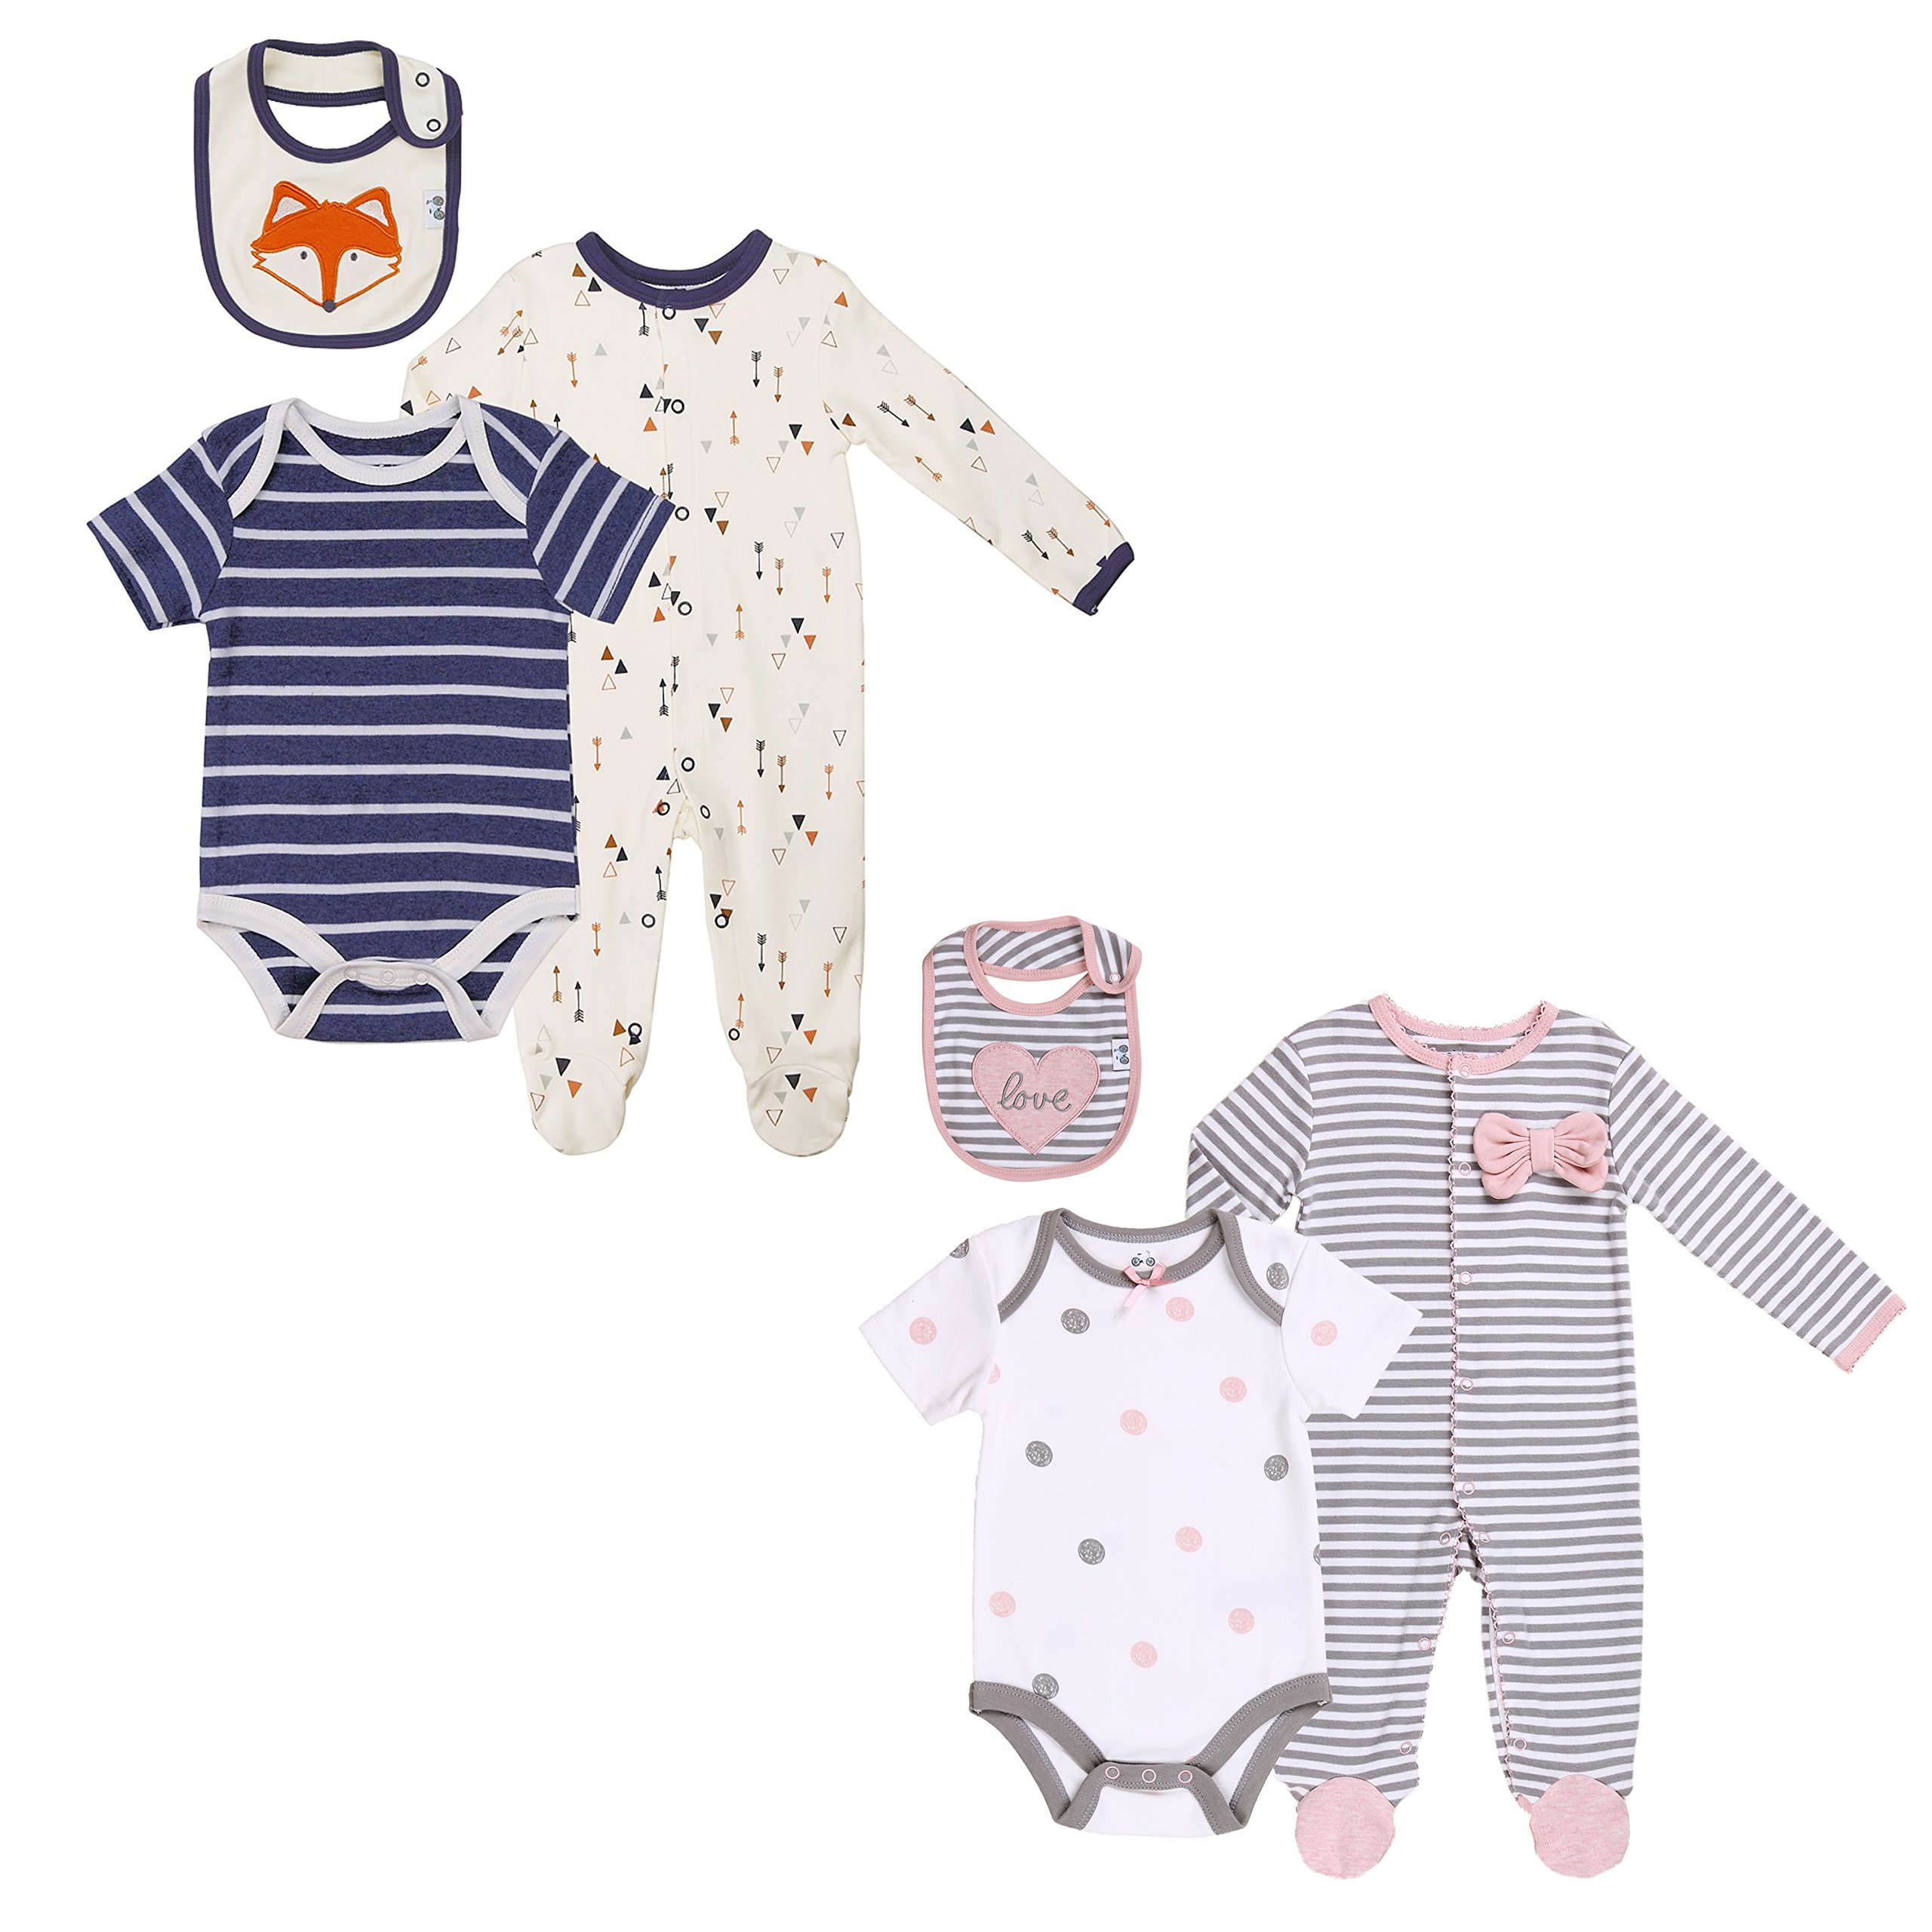 Baby Twin Boy-Girl Gift Outfits Layette 6 pcs Set 3-6 Months